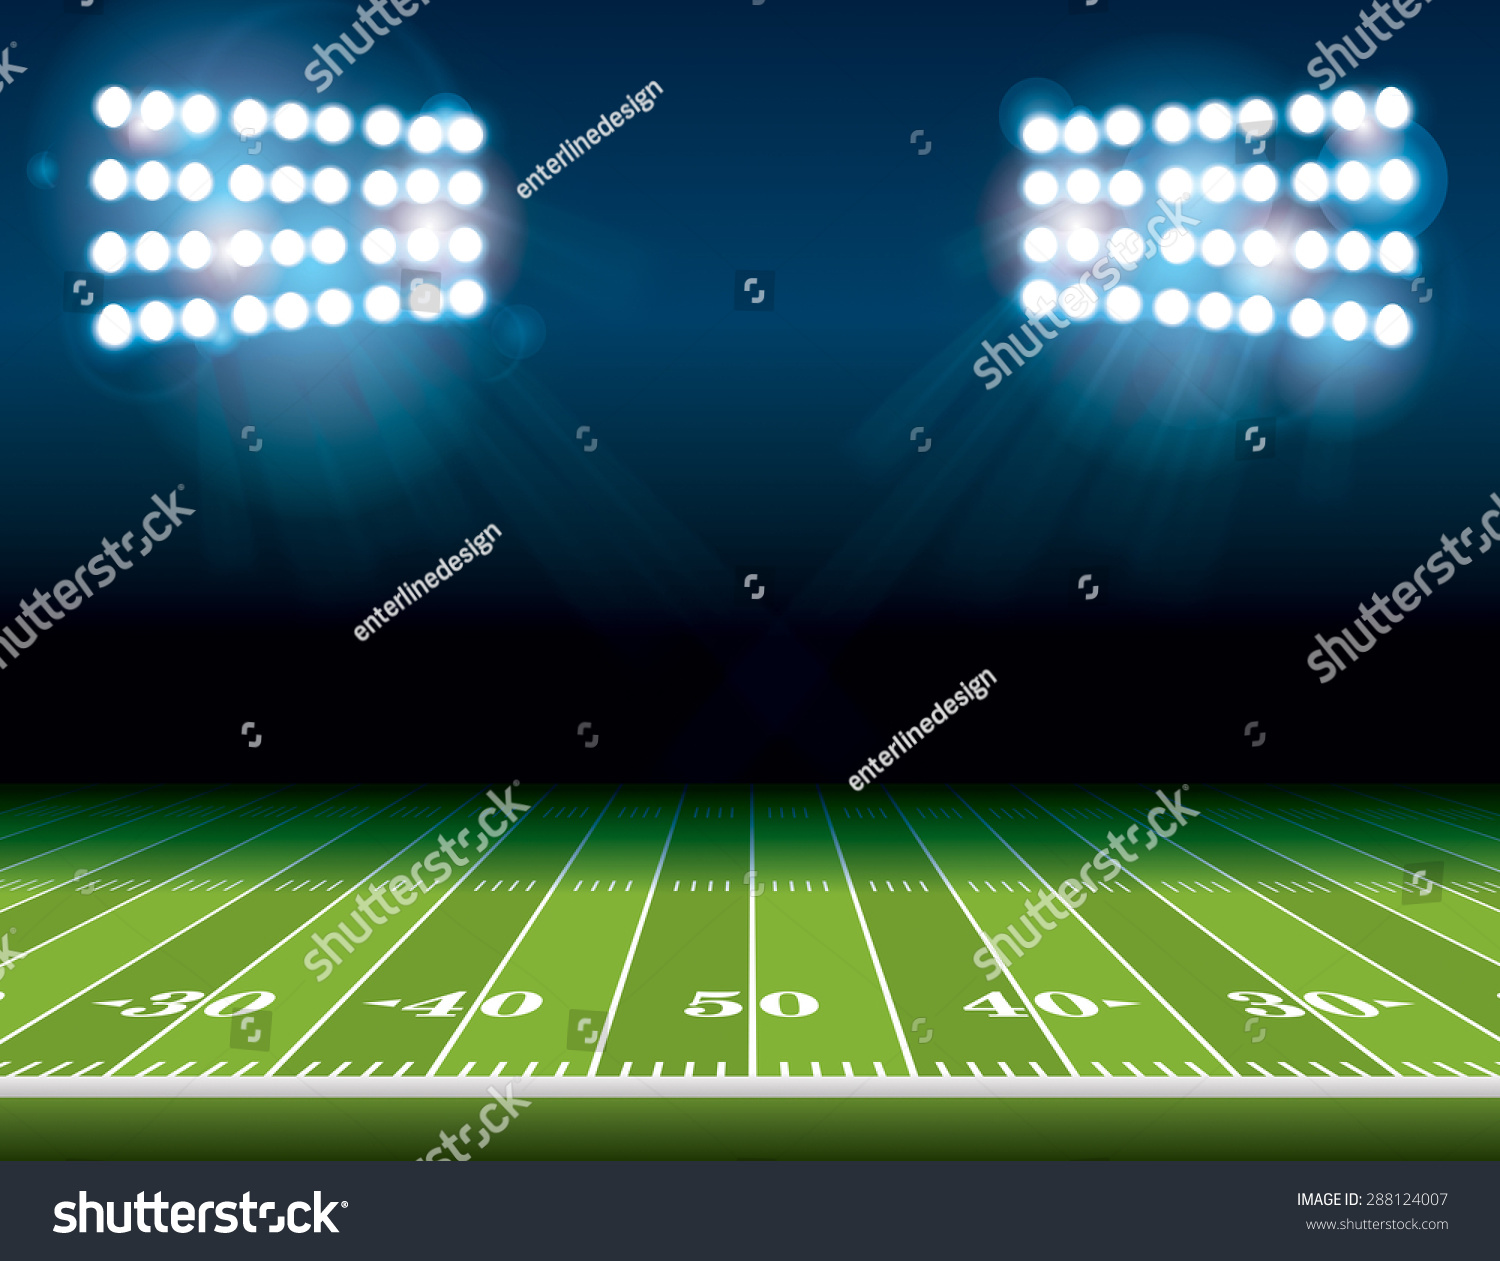 Football Stadium Night Lights: Illustration American Football Field Bright Stadium Stock